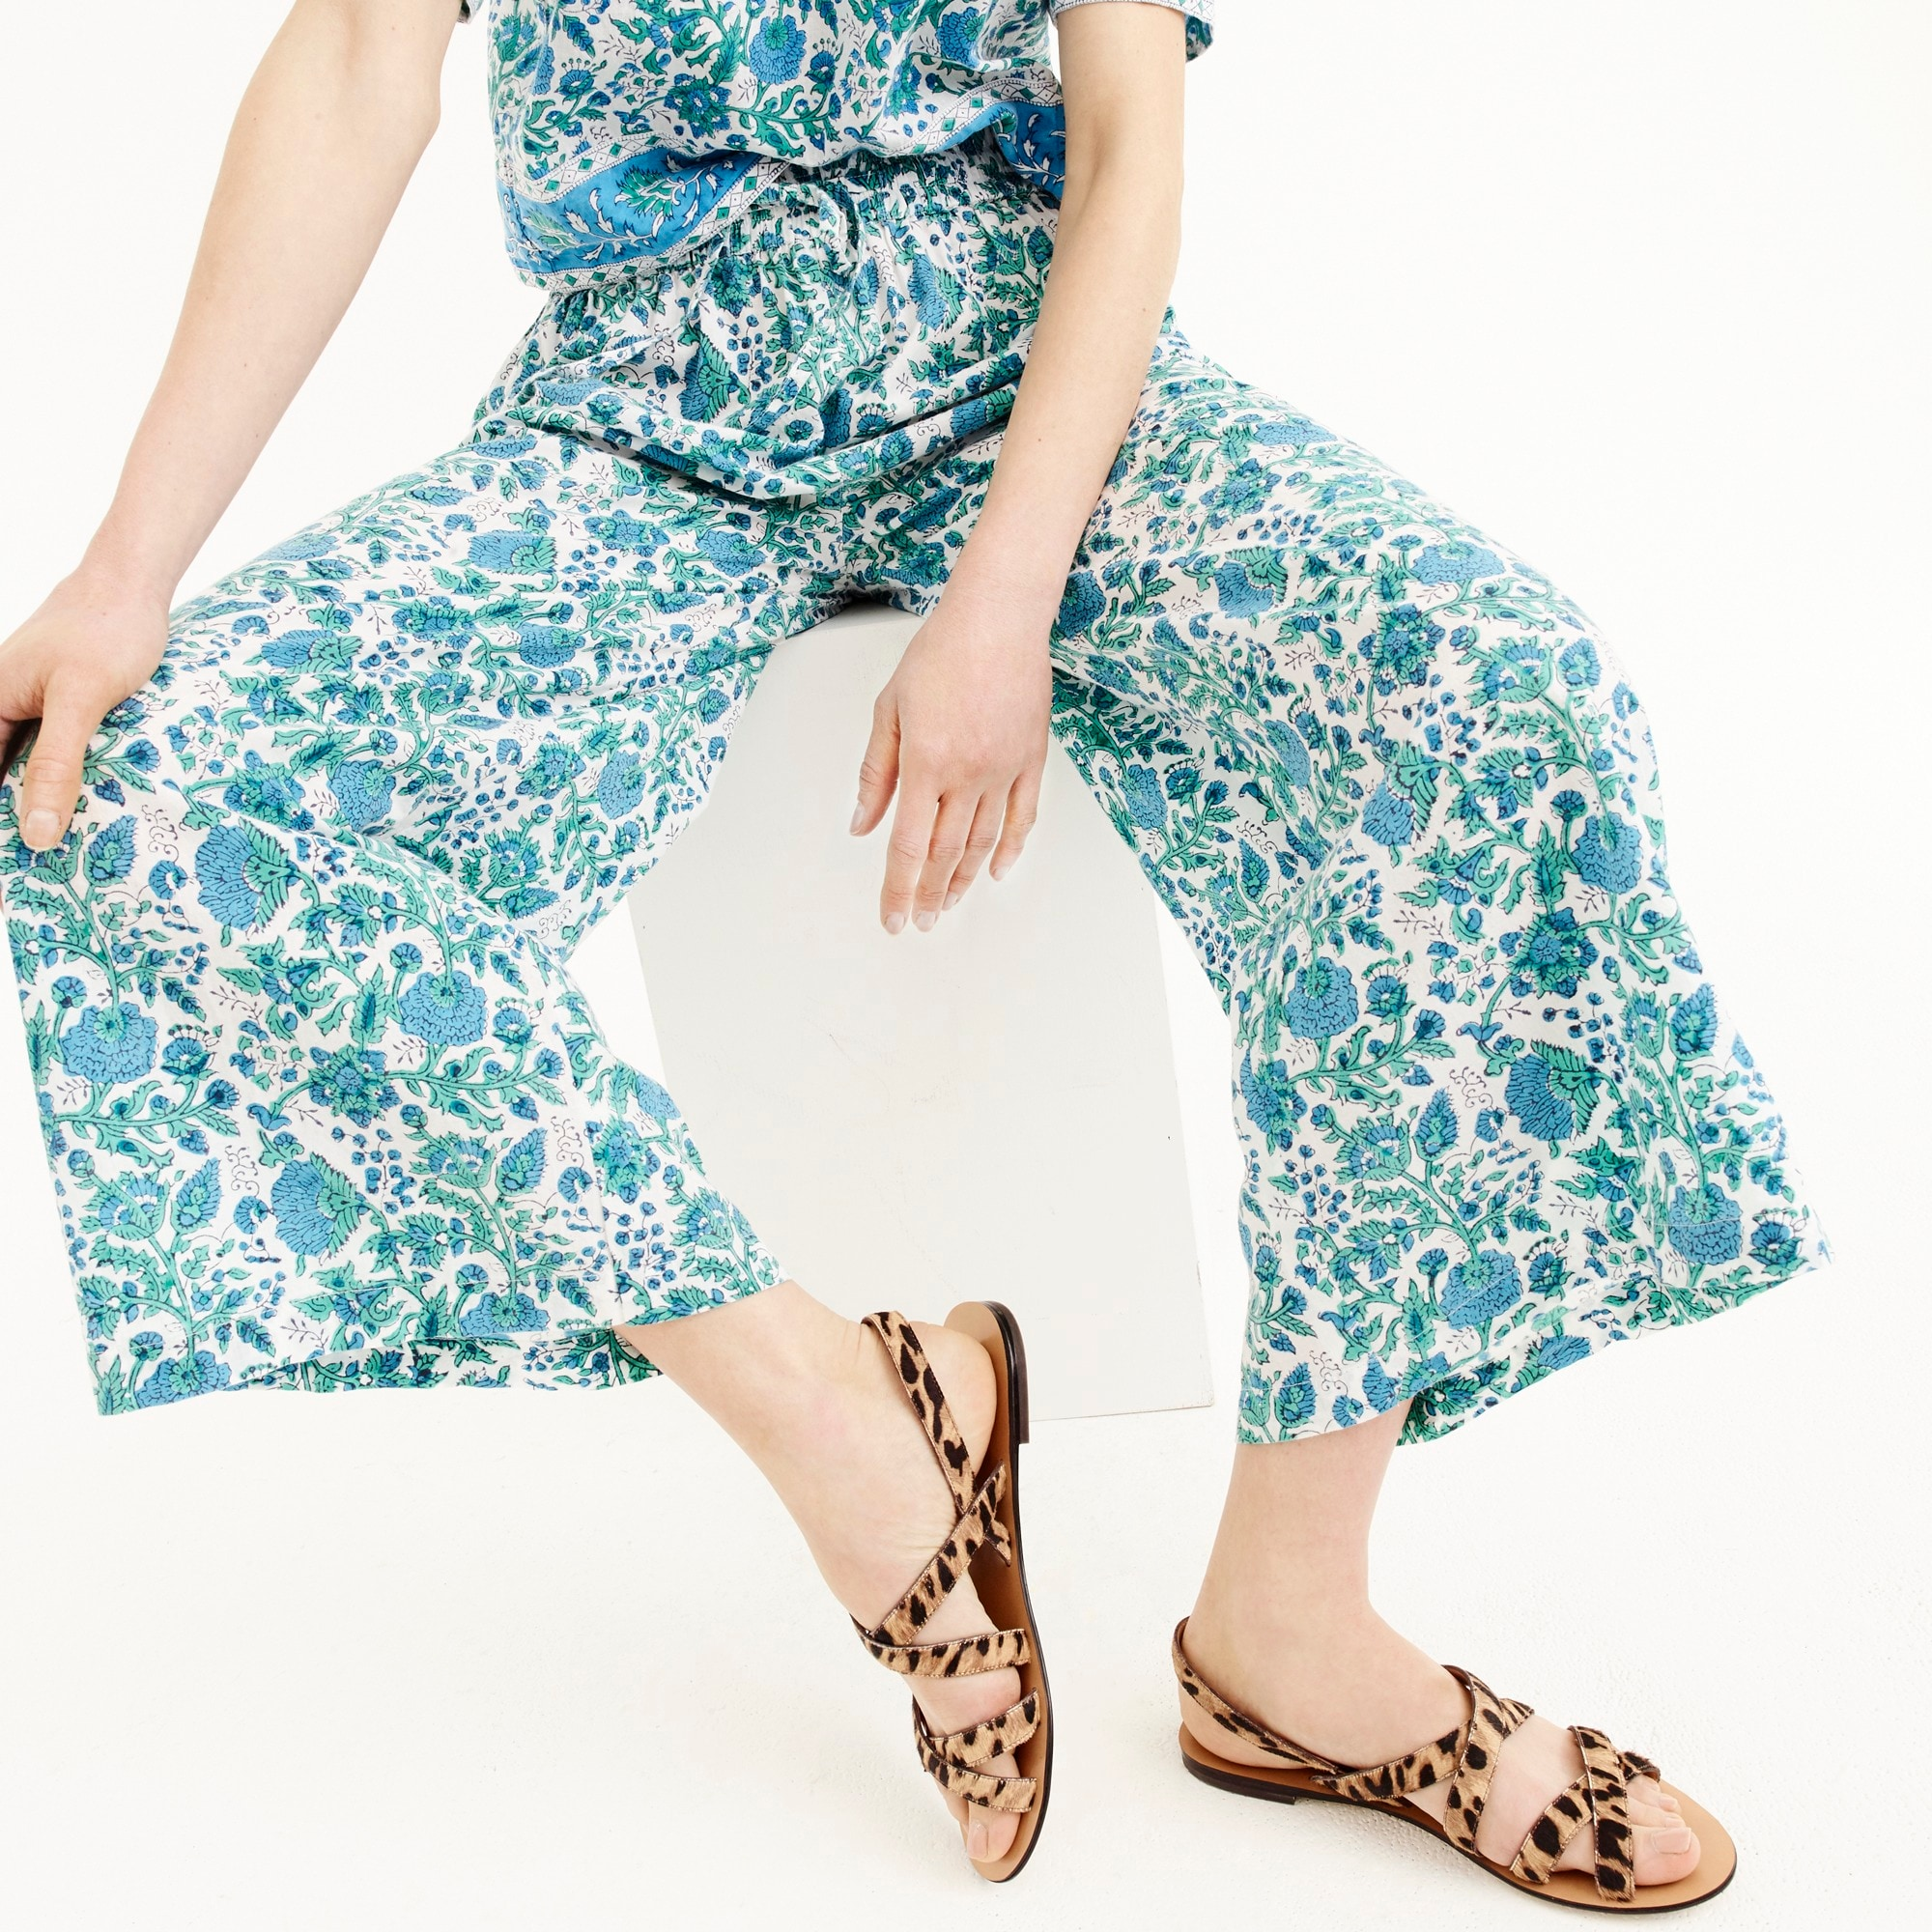 SZ Blockprints™ for J.Crew wide-leg pant in cobalt leaf women j.crew in good company c